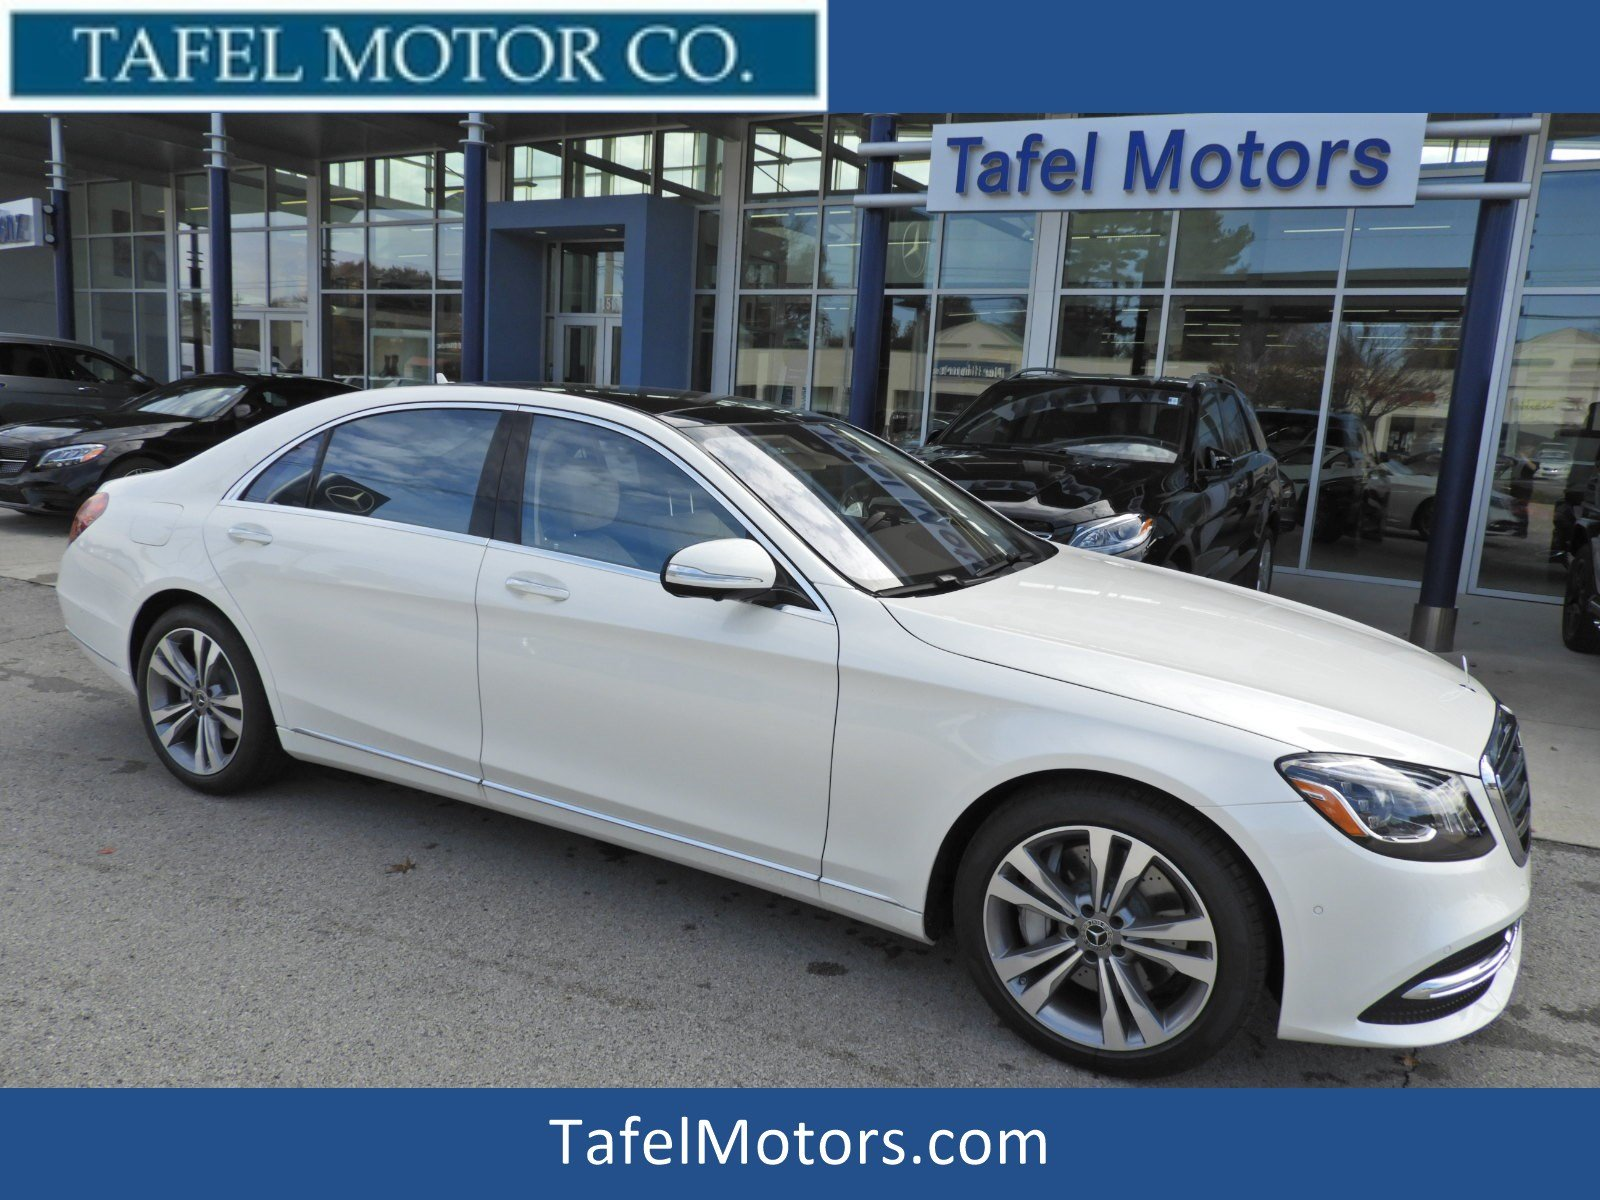 Stock M New 2019 Mercedes Benz S Class S 450 4MATIC Sedan in